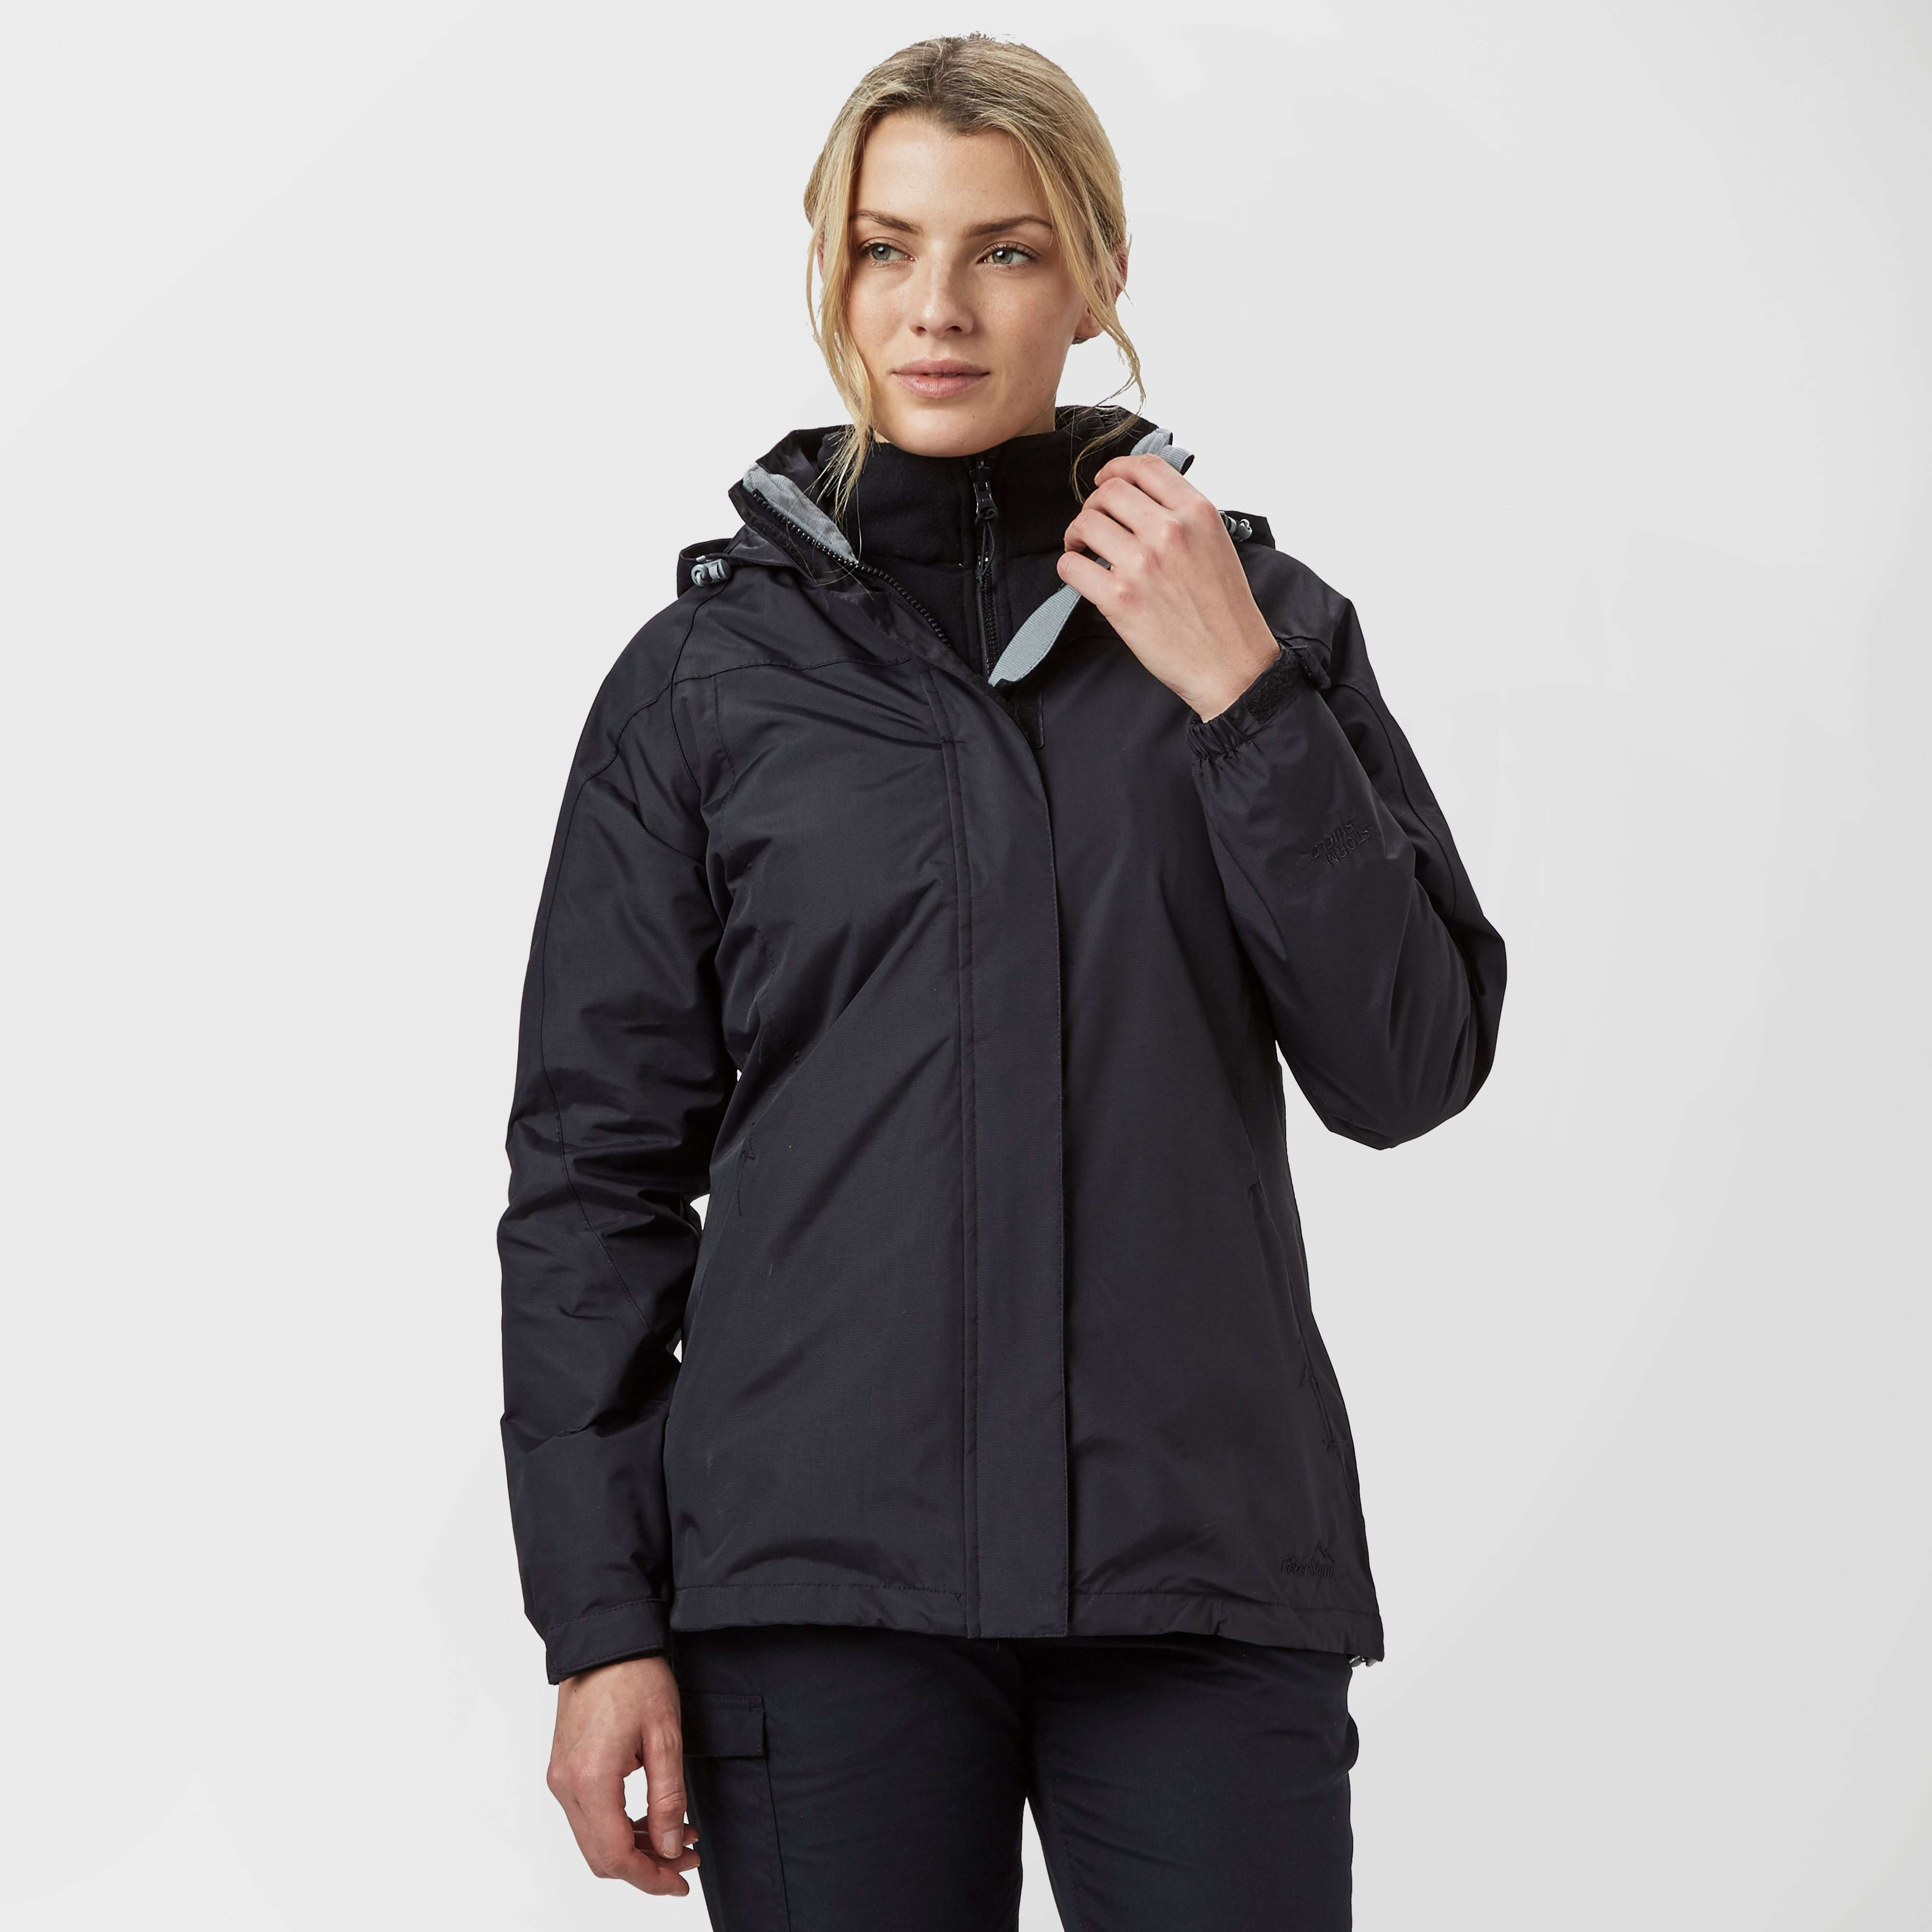 PETER STORM Women's Lakeside II 3 in 1 Jacket